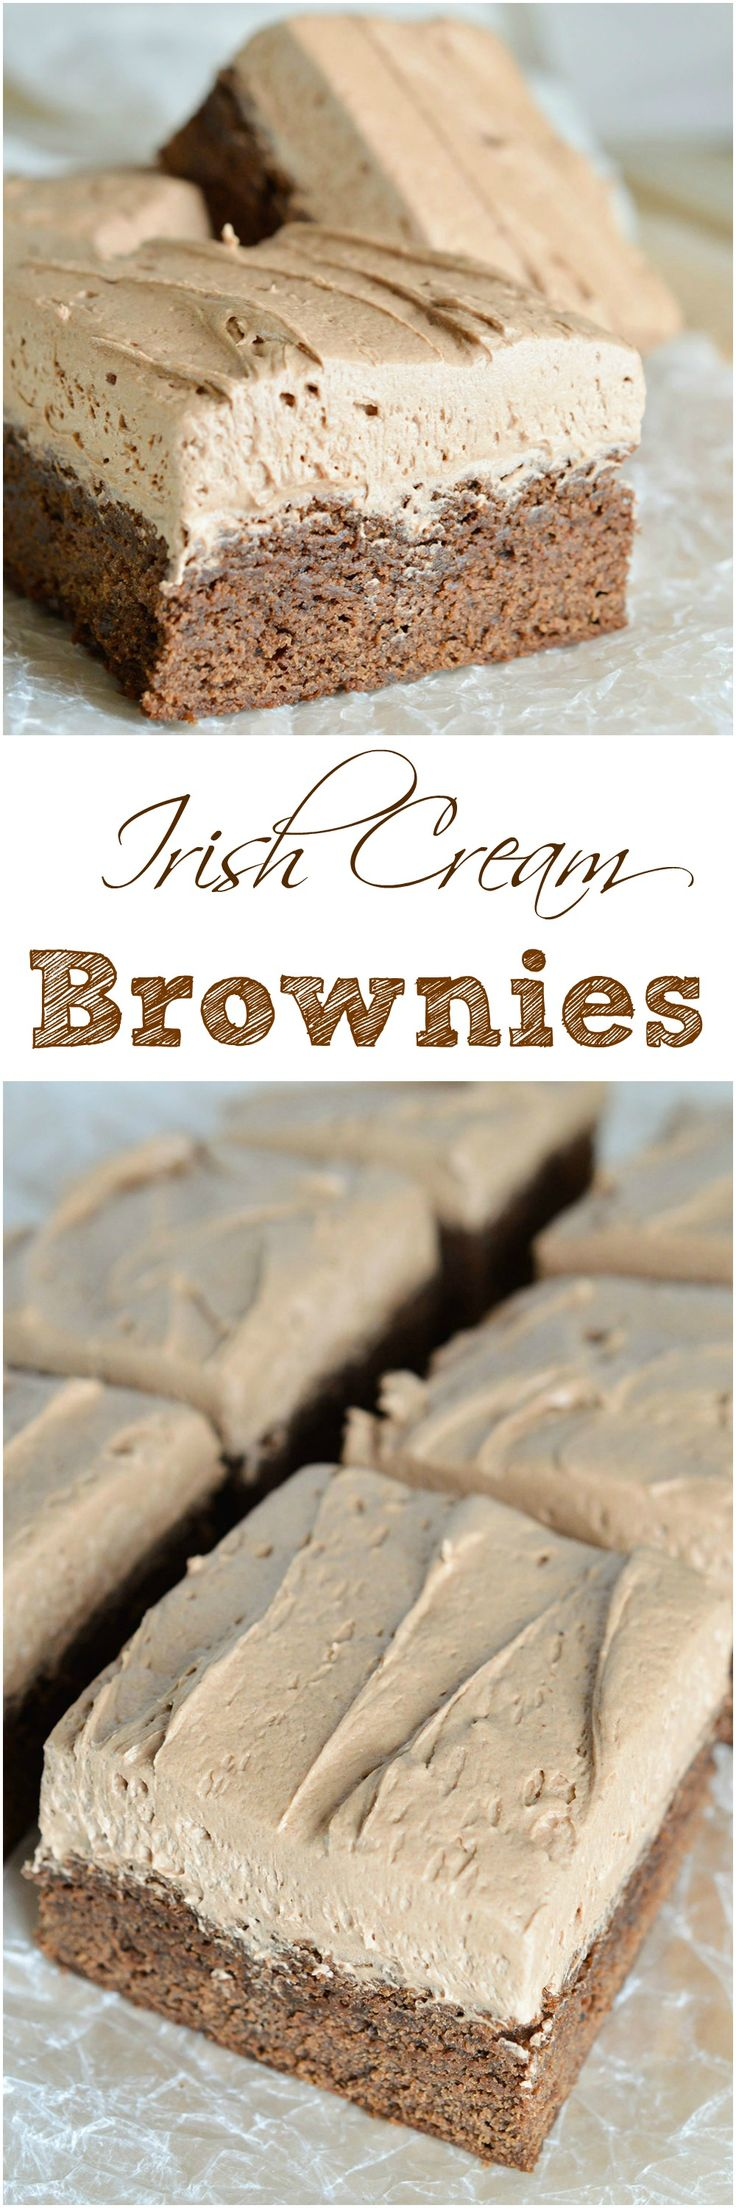 Moist cake like chocolate brownies topped with decadent chocolate Irish Cream frosting.